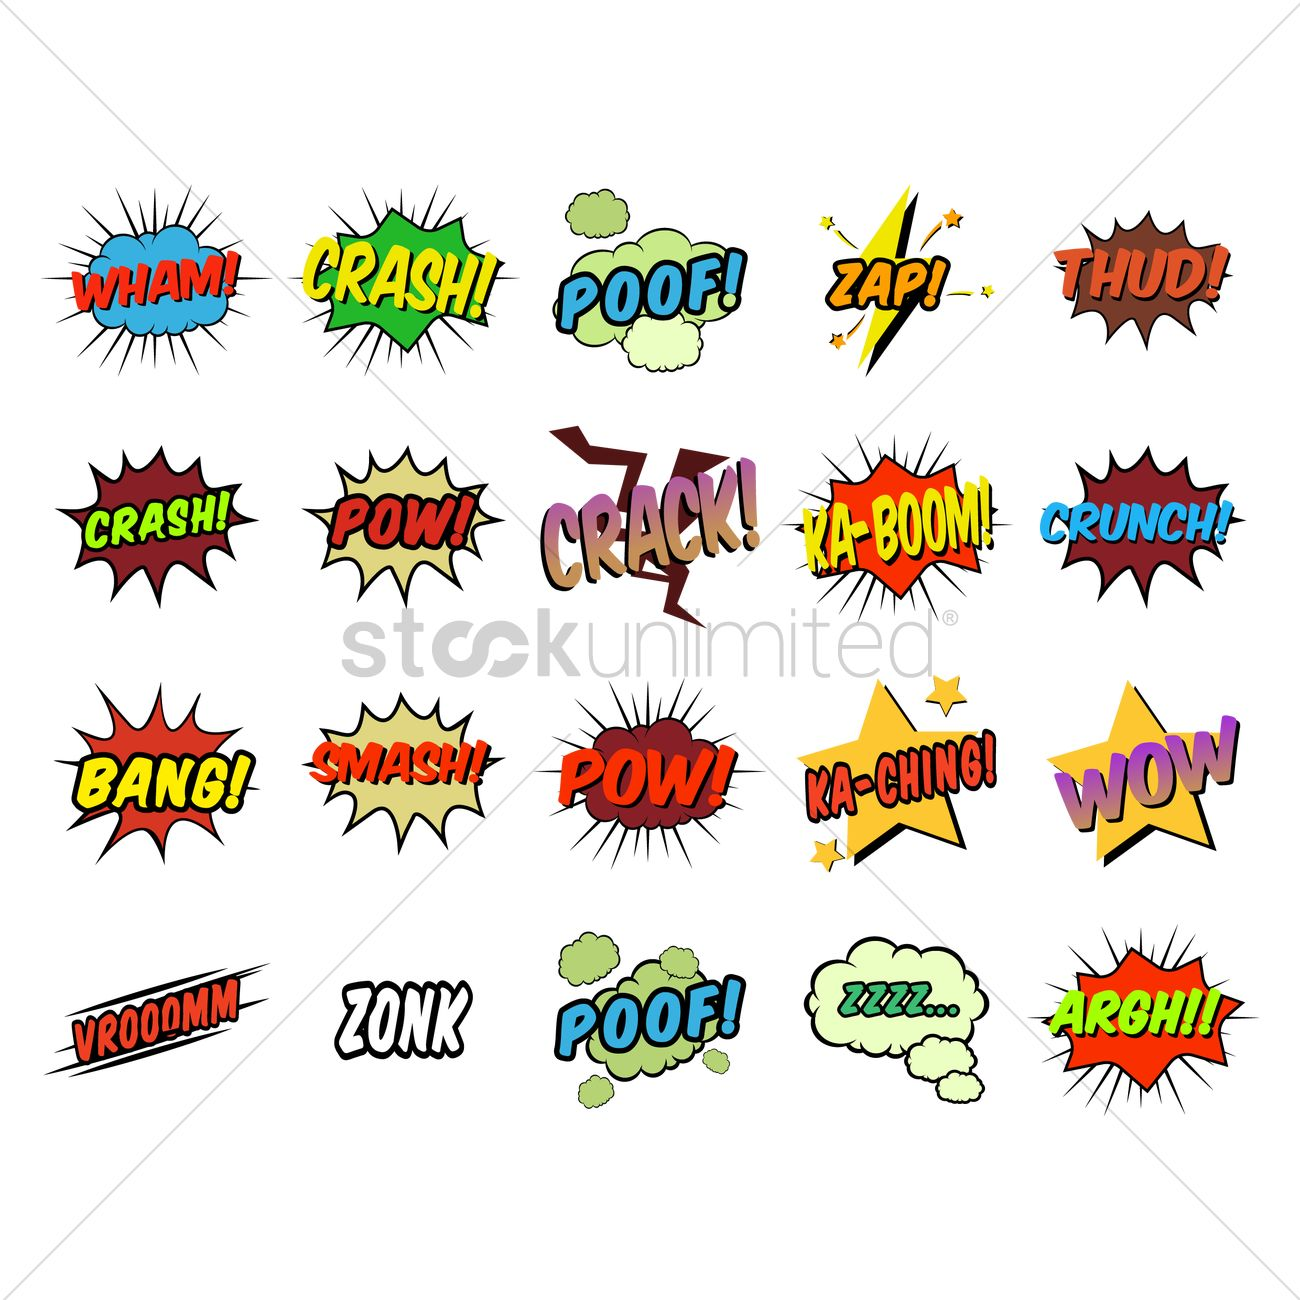 Set of comic speech bubbles Vector Image - 1711007   StockUnlimited